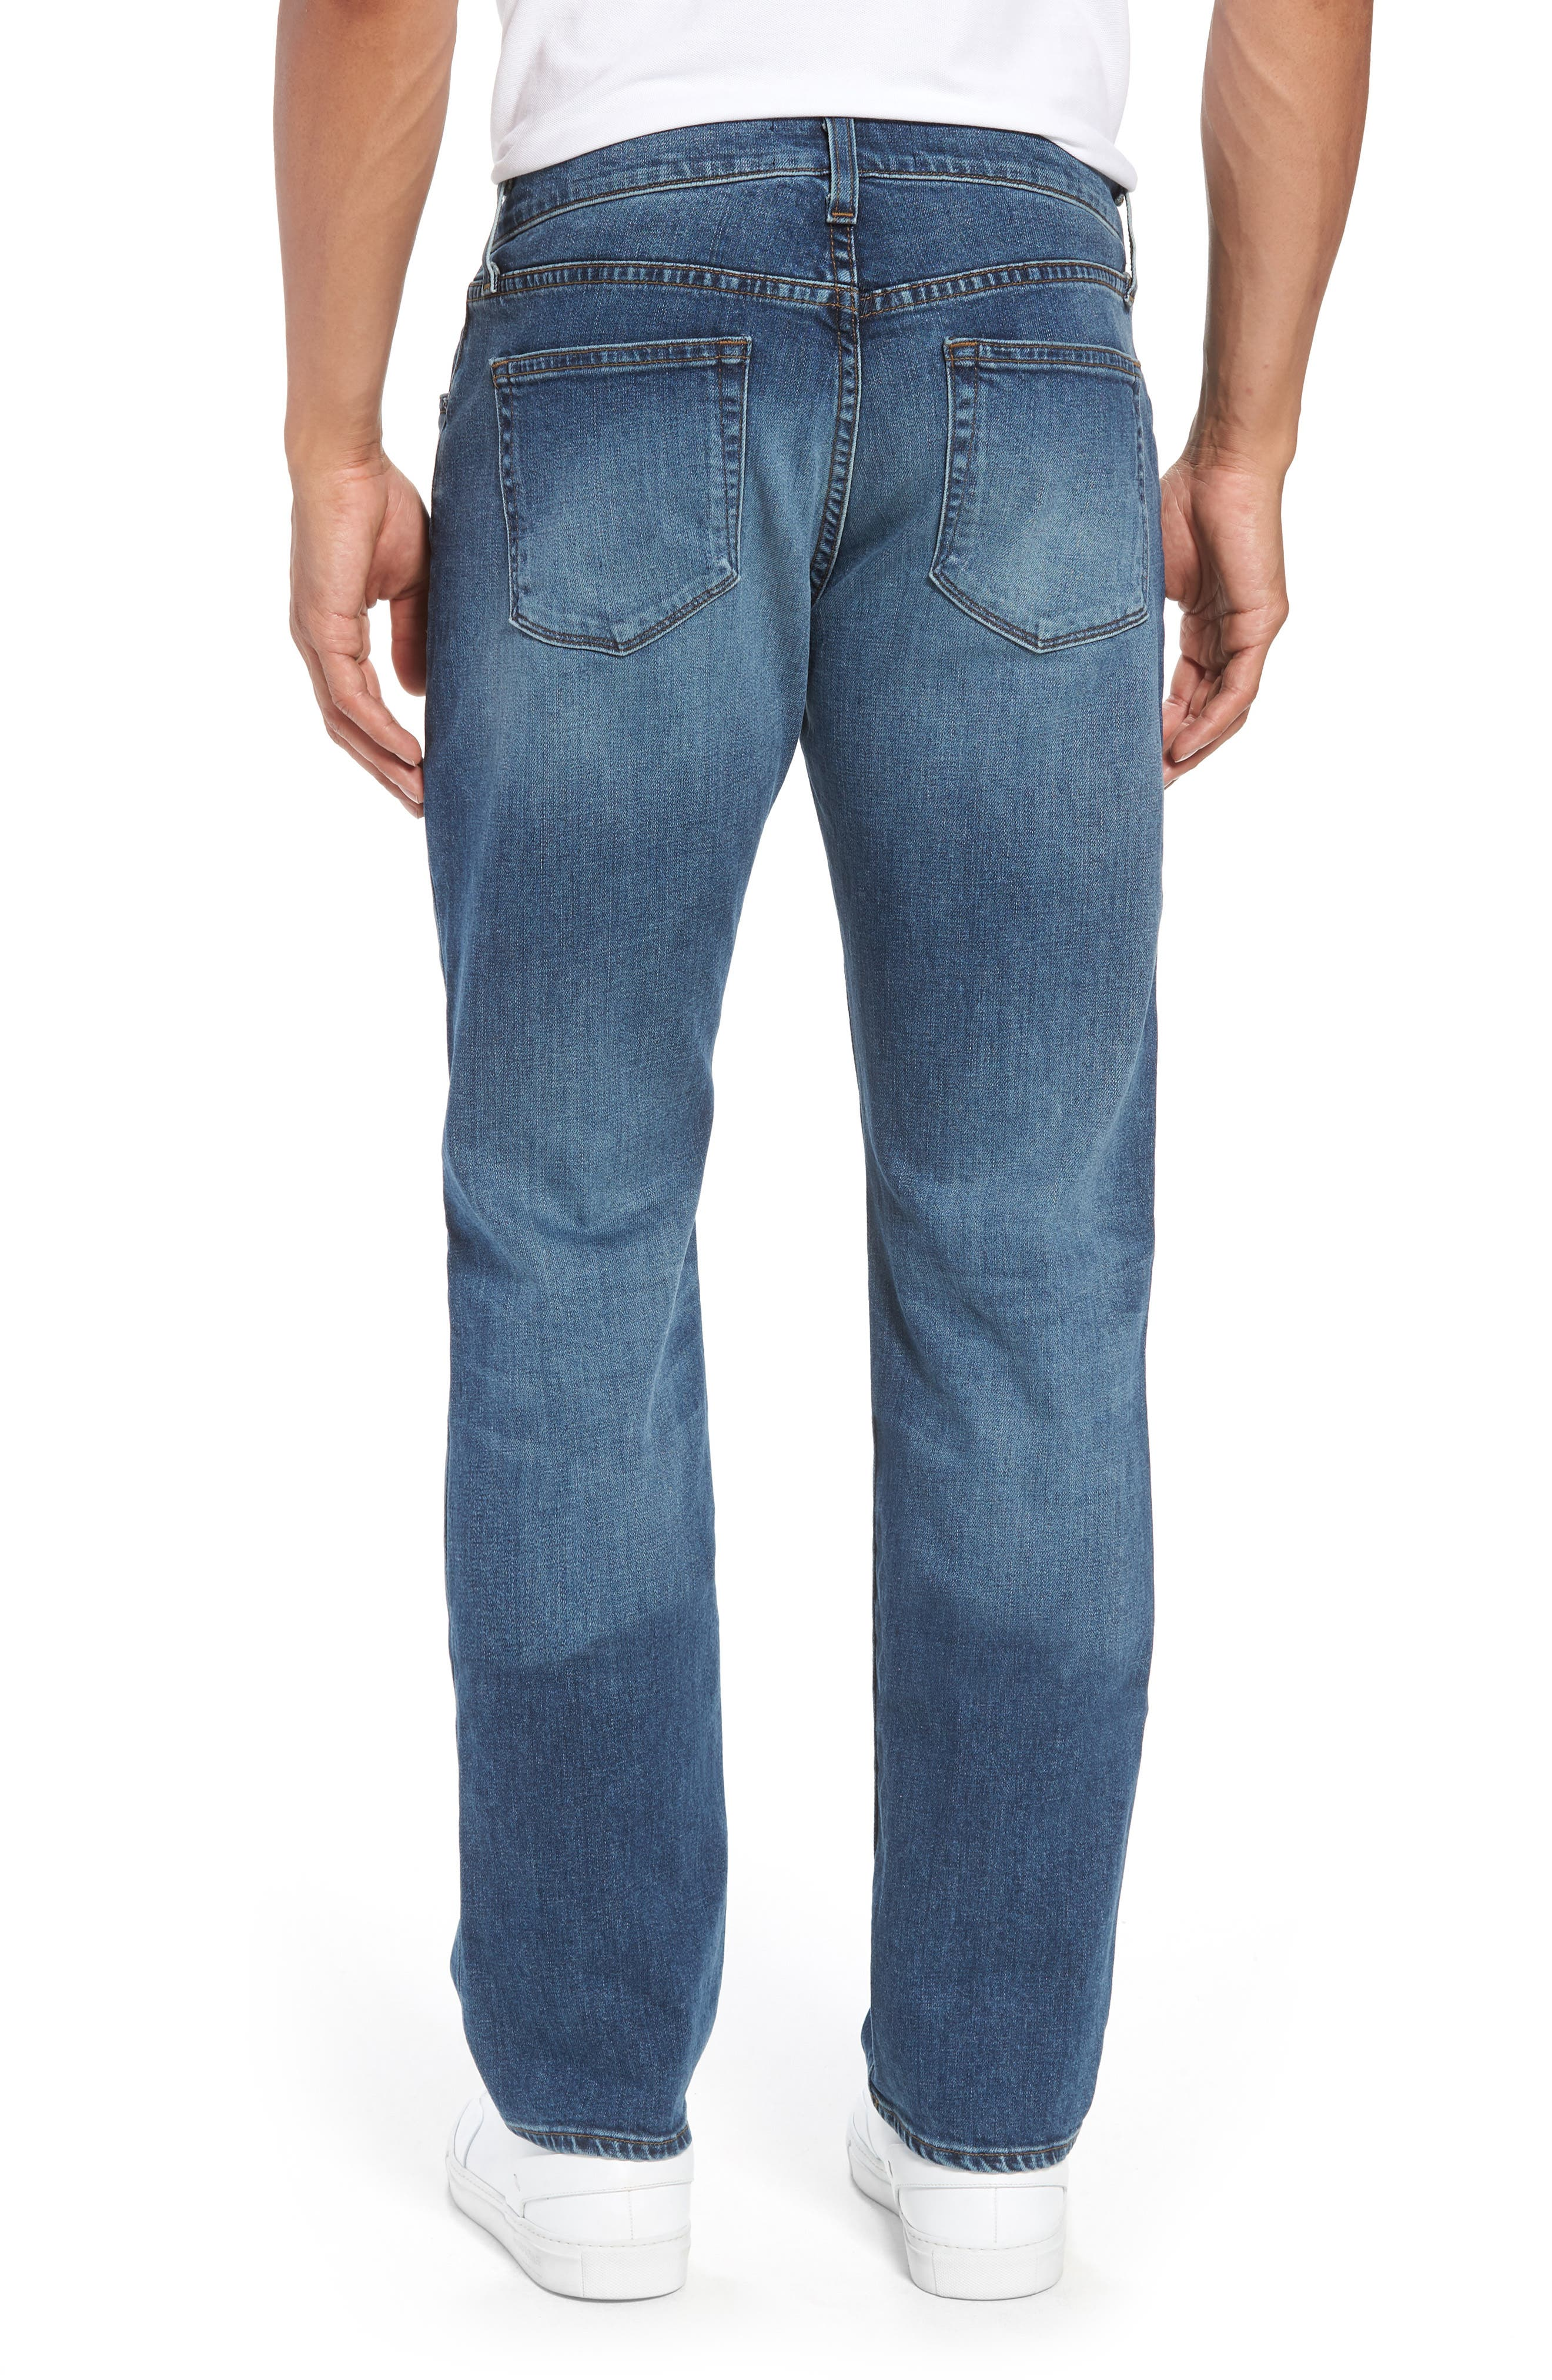 Kane Slim Straight Leg Jeans,                             Alternate thumbnail 2, color,                             Barva